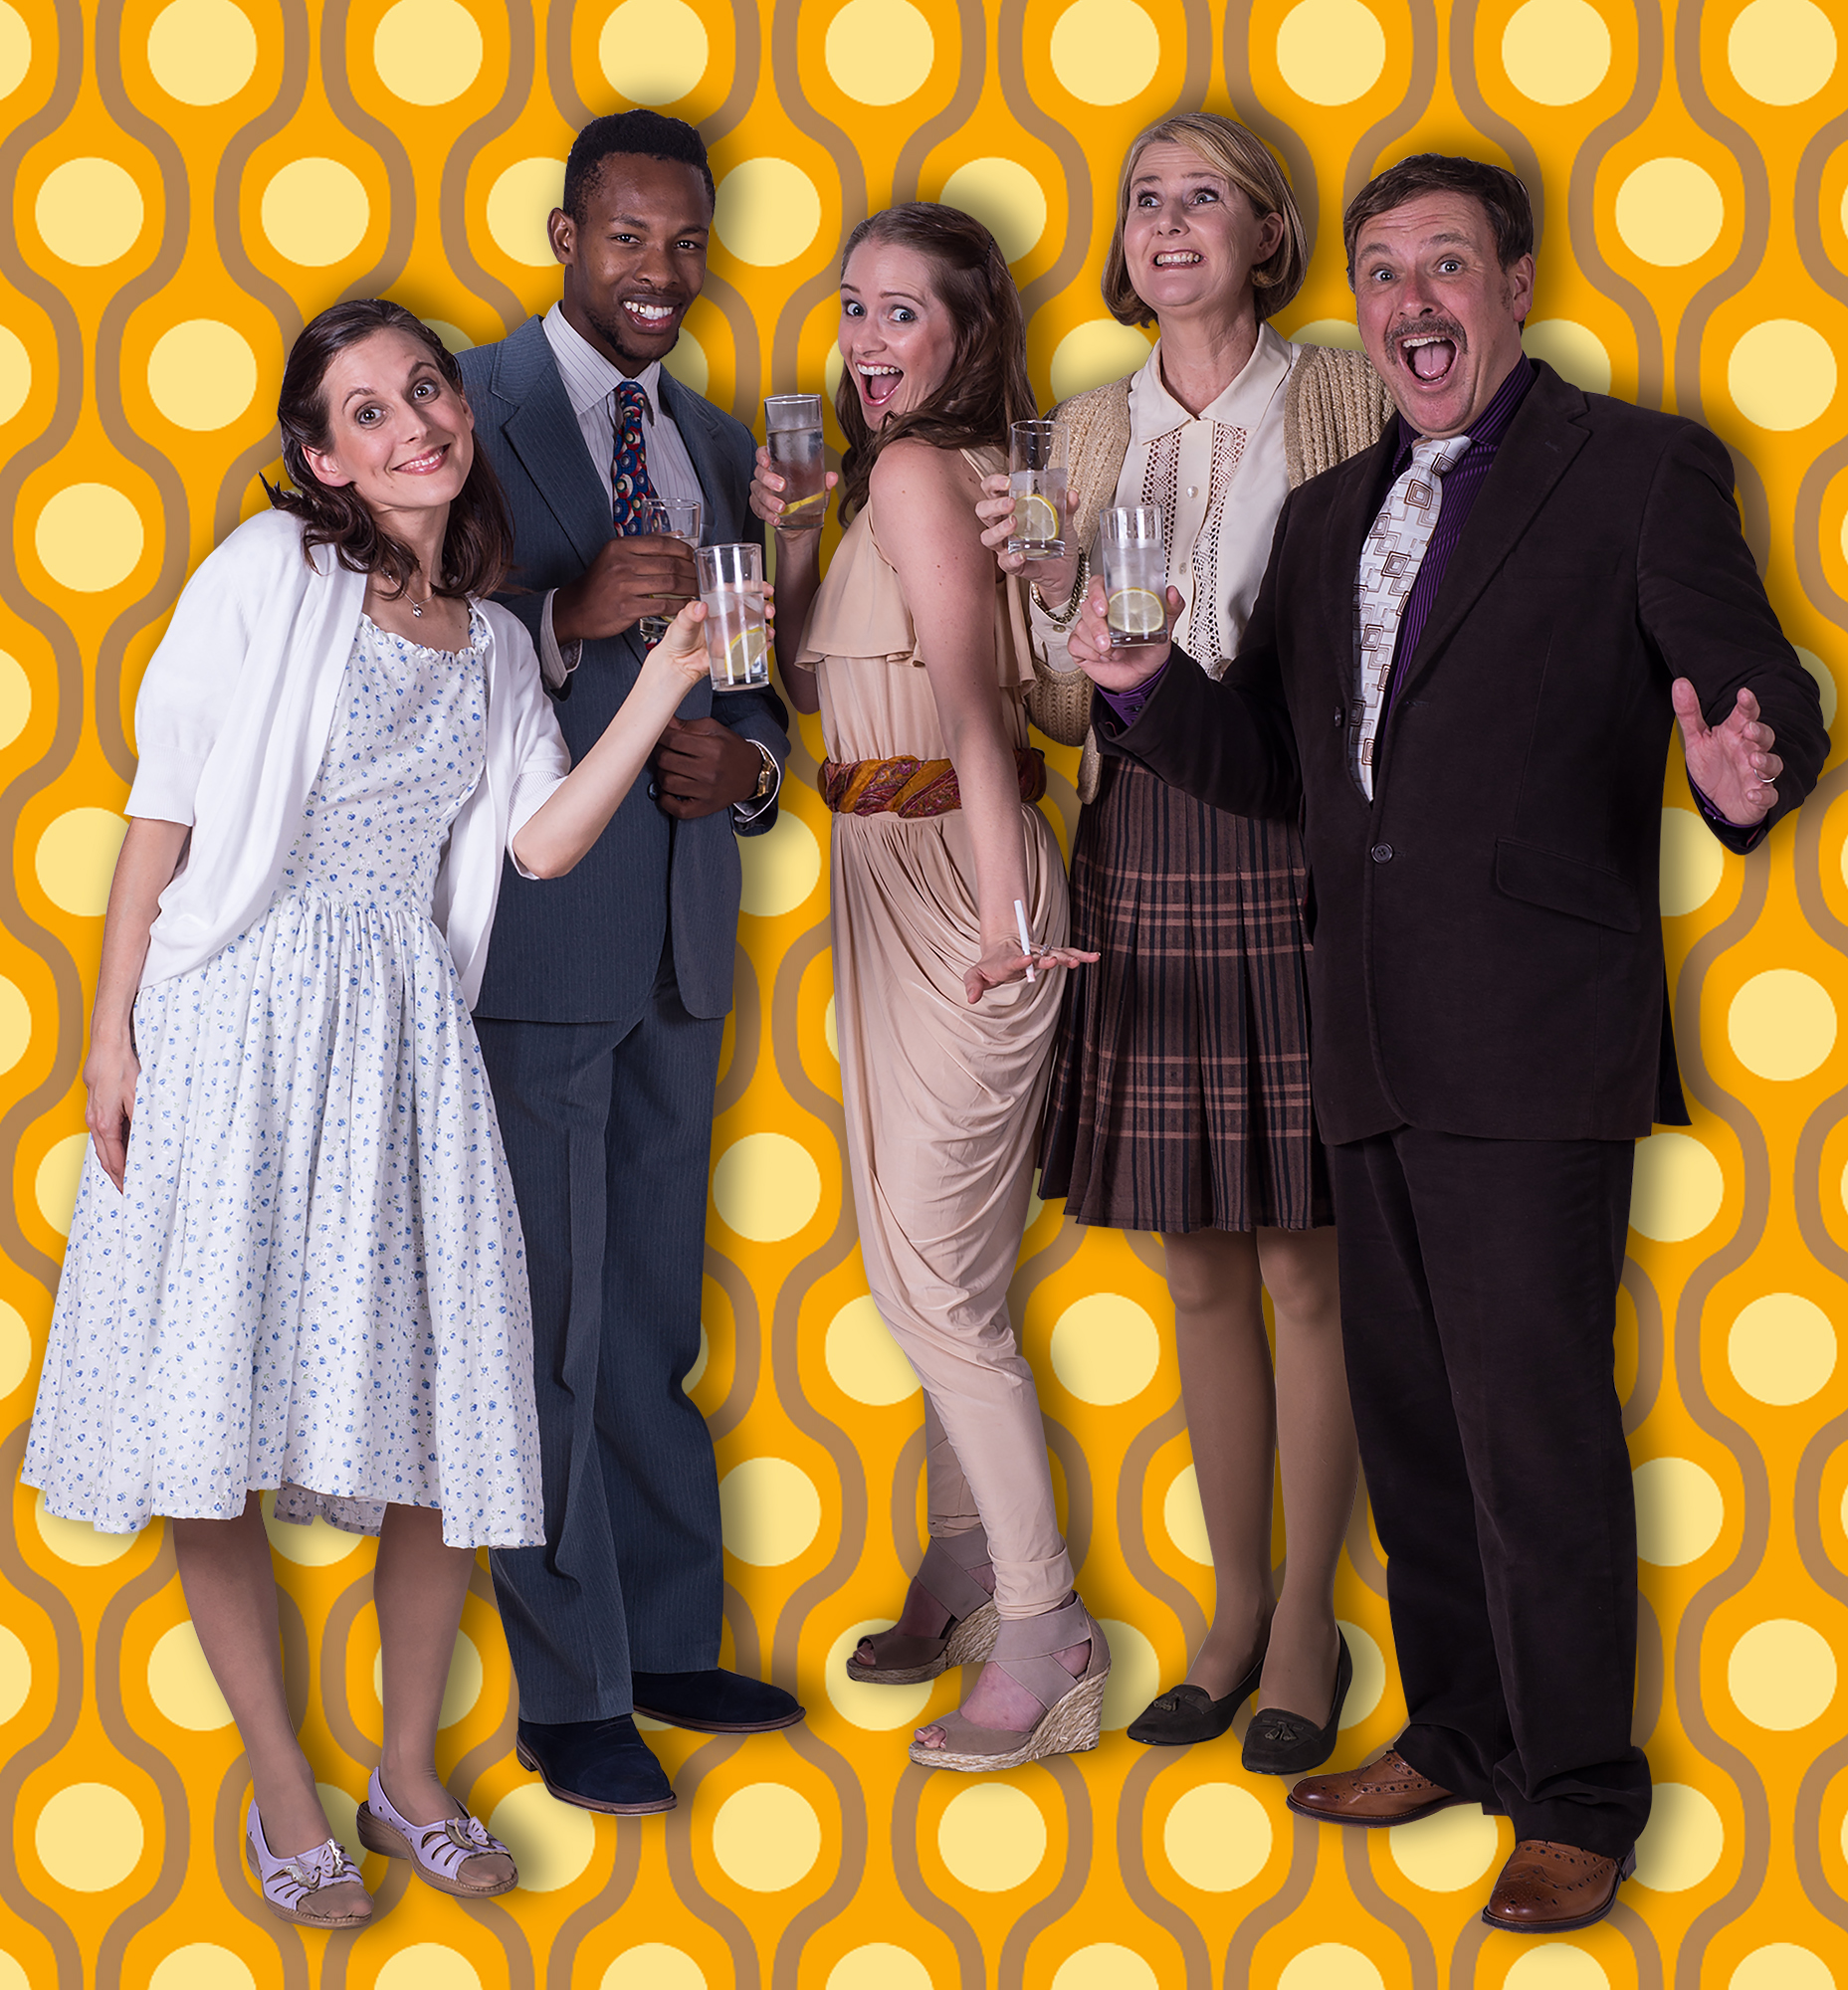 abigails party Abigail's party is a play for stage and television devised and directed in 1977 by mike leigh it is a suburban situation comedy of manners, and a satire on the aspirations and tastes of the new middle class that emerged in britain in the 1970s.